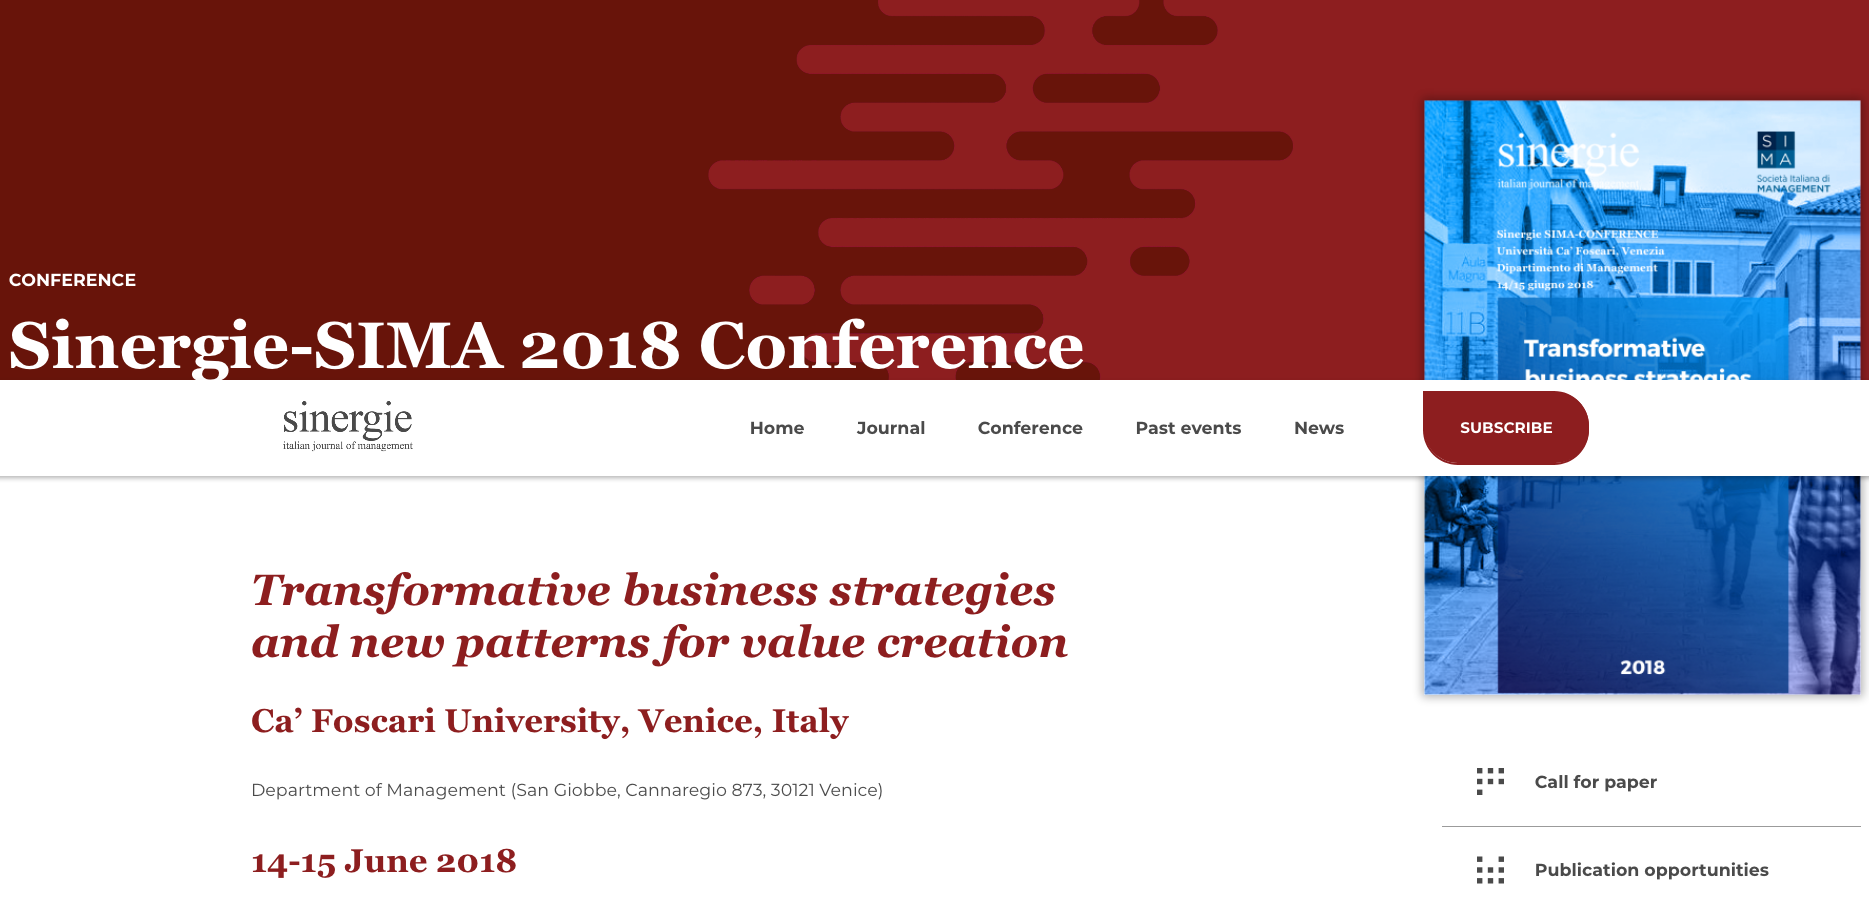 Sinergie-SIMA 2018 Conference – Sinergie